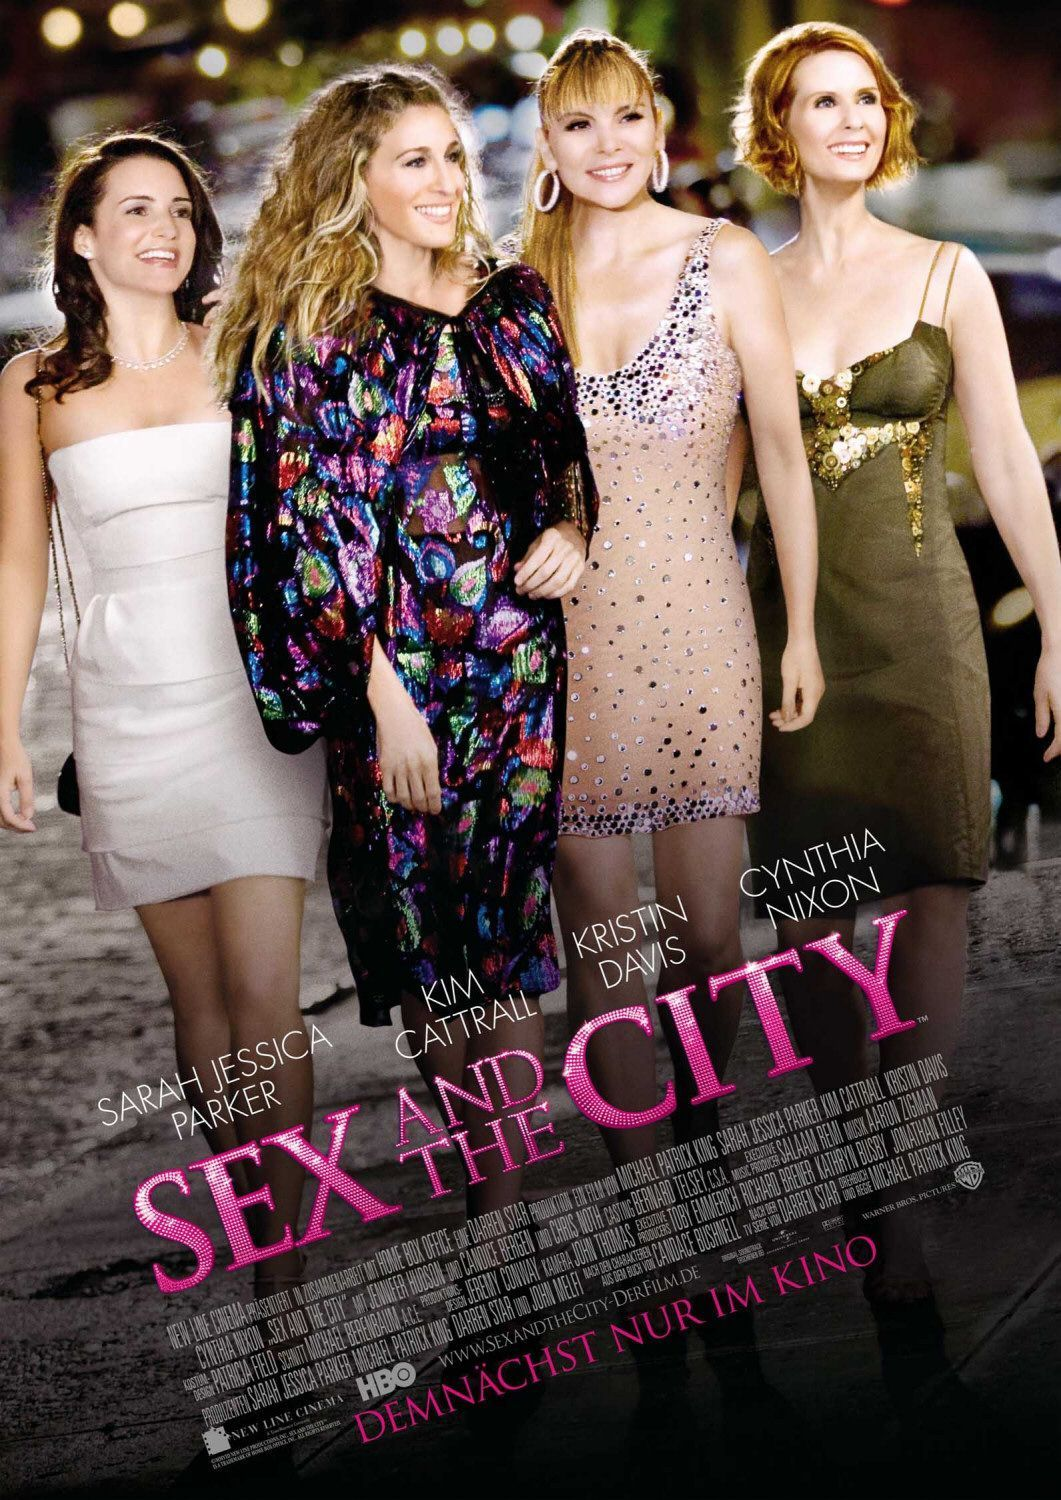 Myspace sex and the city